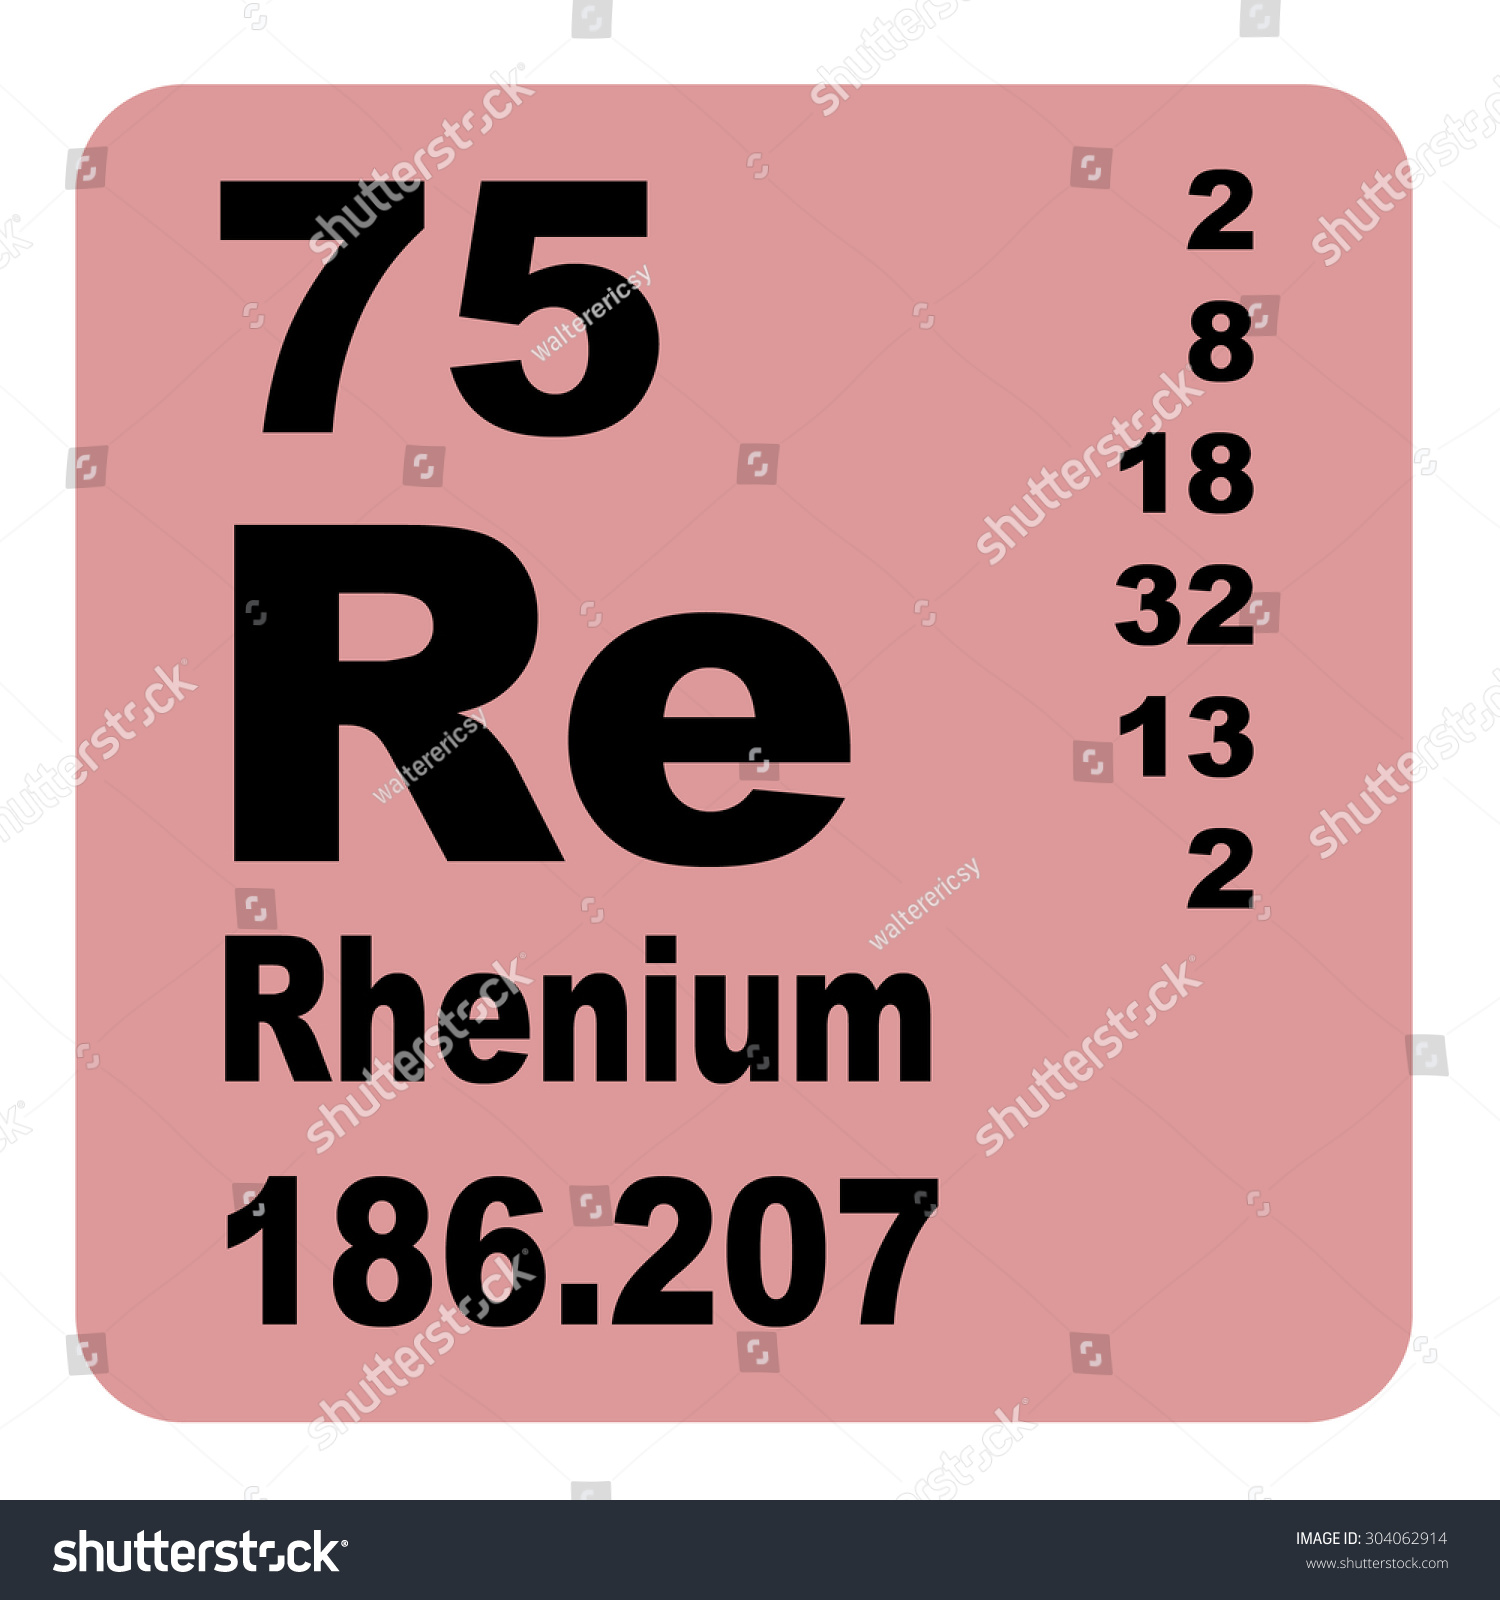 periodic table movies quiz sporcleperiodic table quiz sporcleperiodic table quiz free quizzes amp questions onlineperiodic table of europe map quiz - Periodic Table Quiz Sporcle